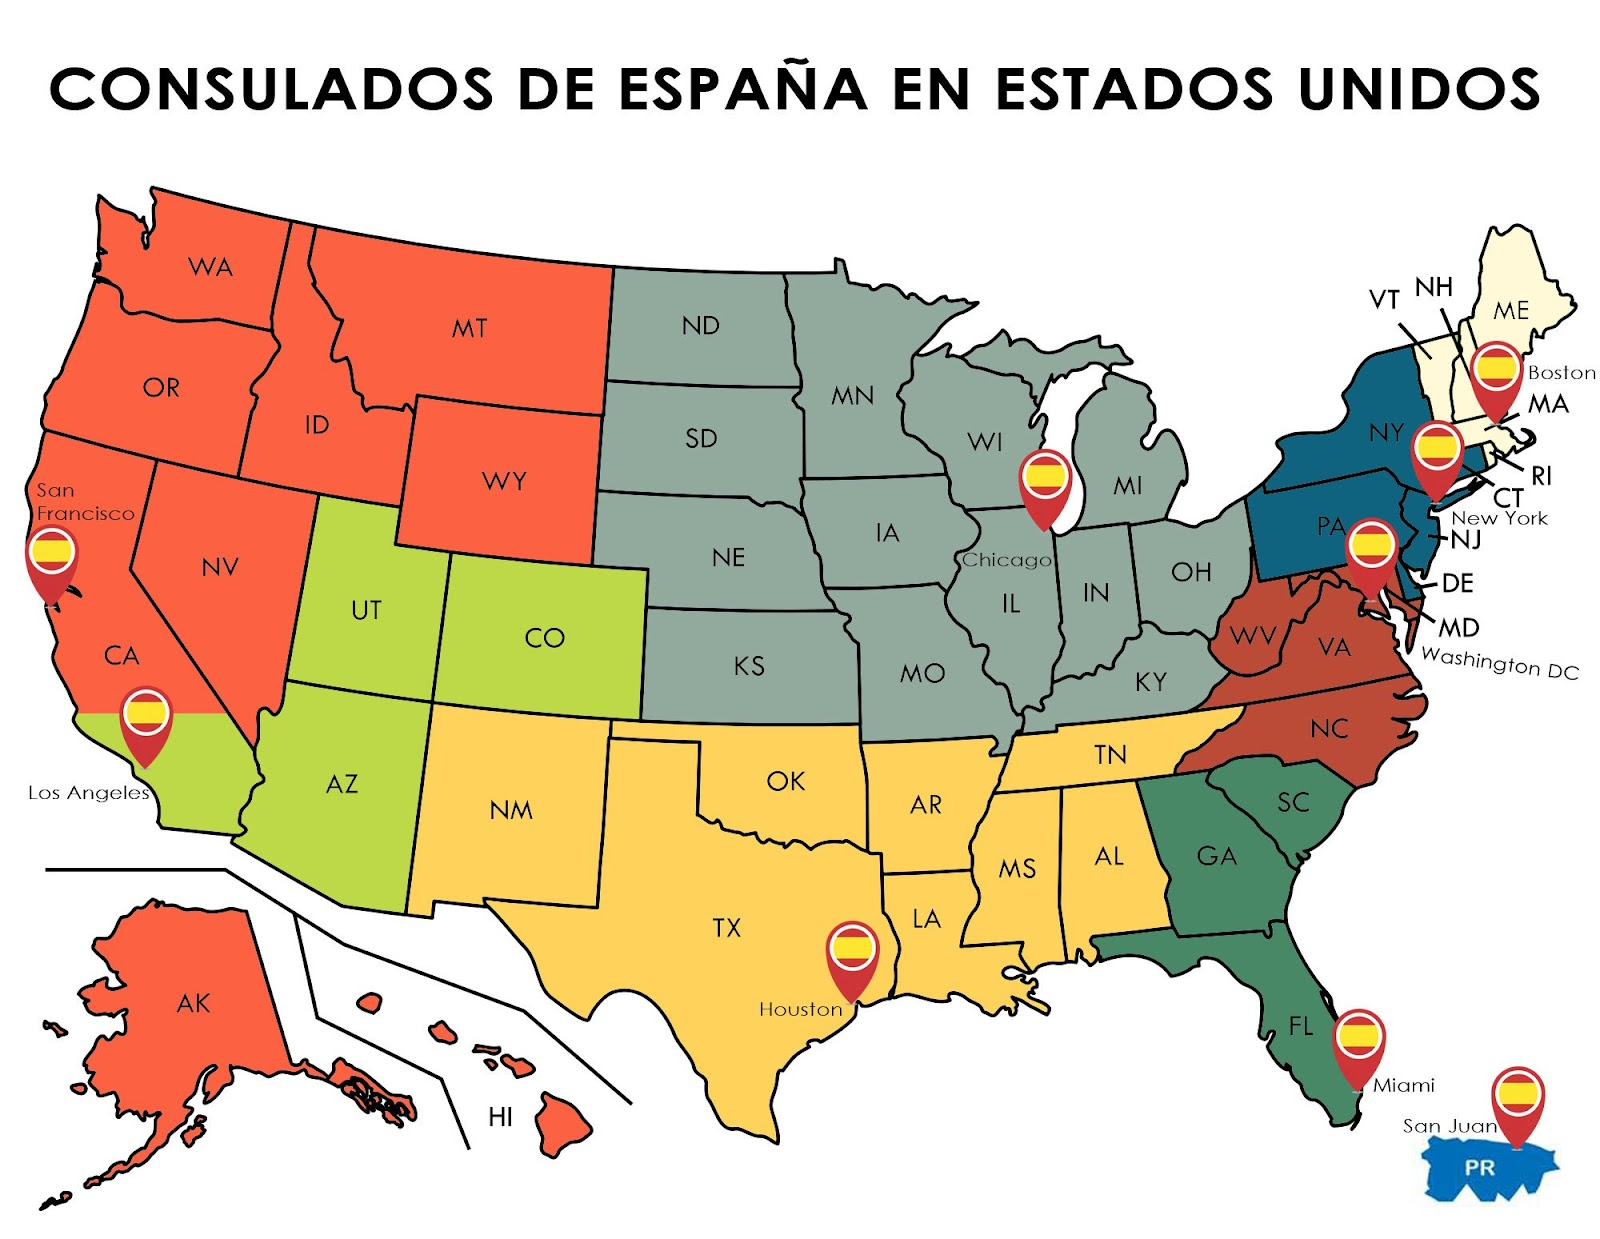 A map with the consular jurisdictions of the nine Consulate General of Spain in the United States of America